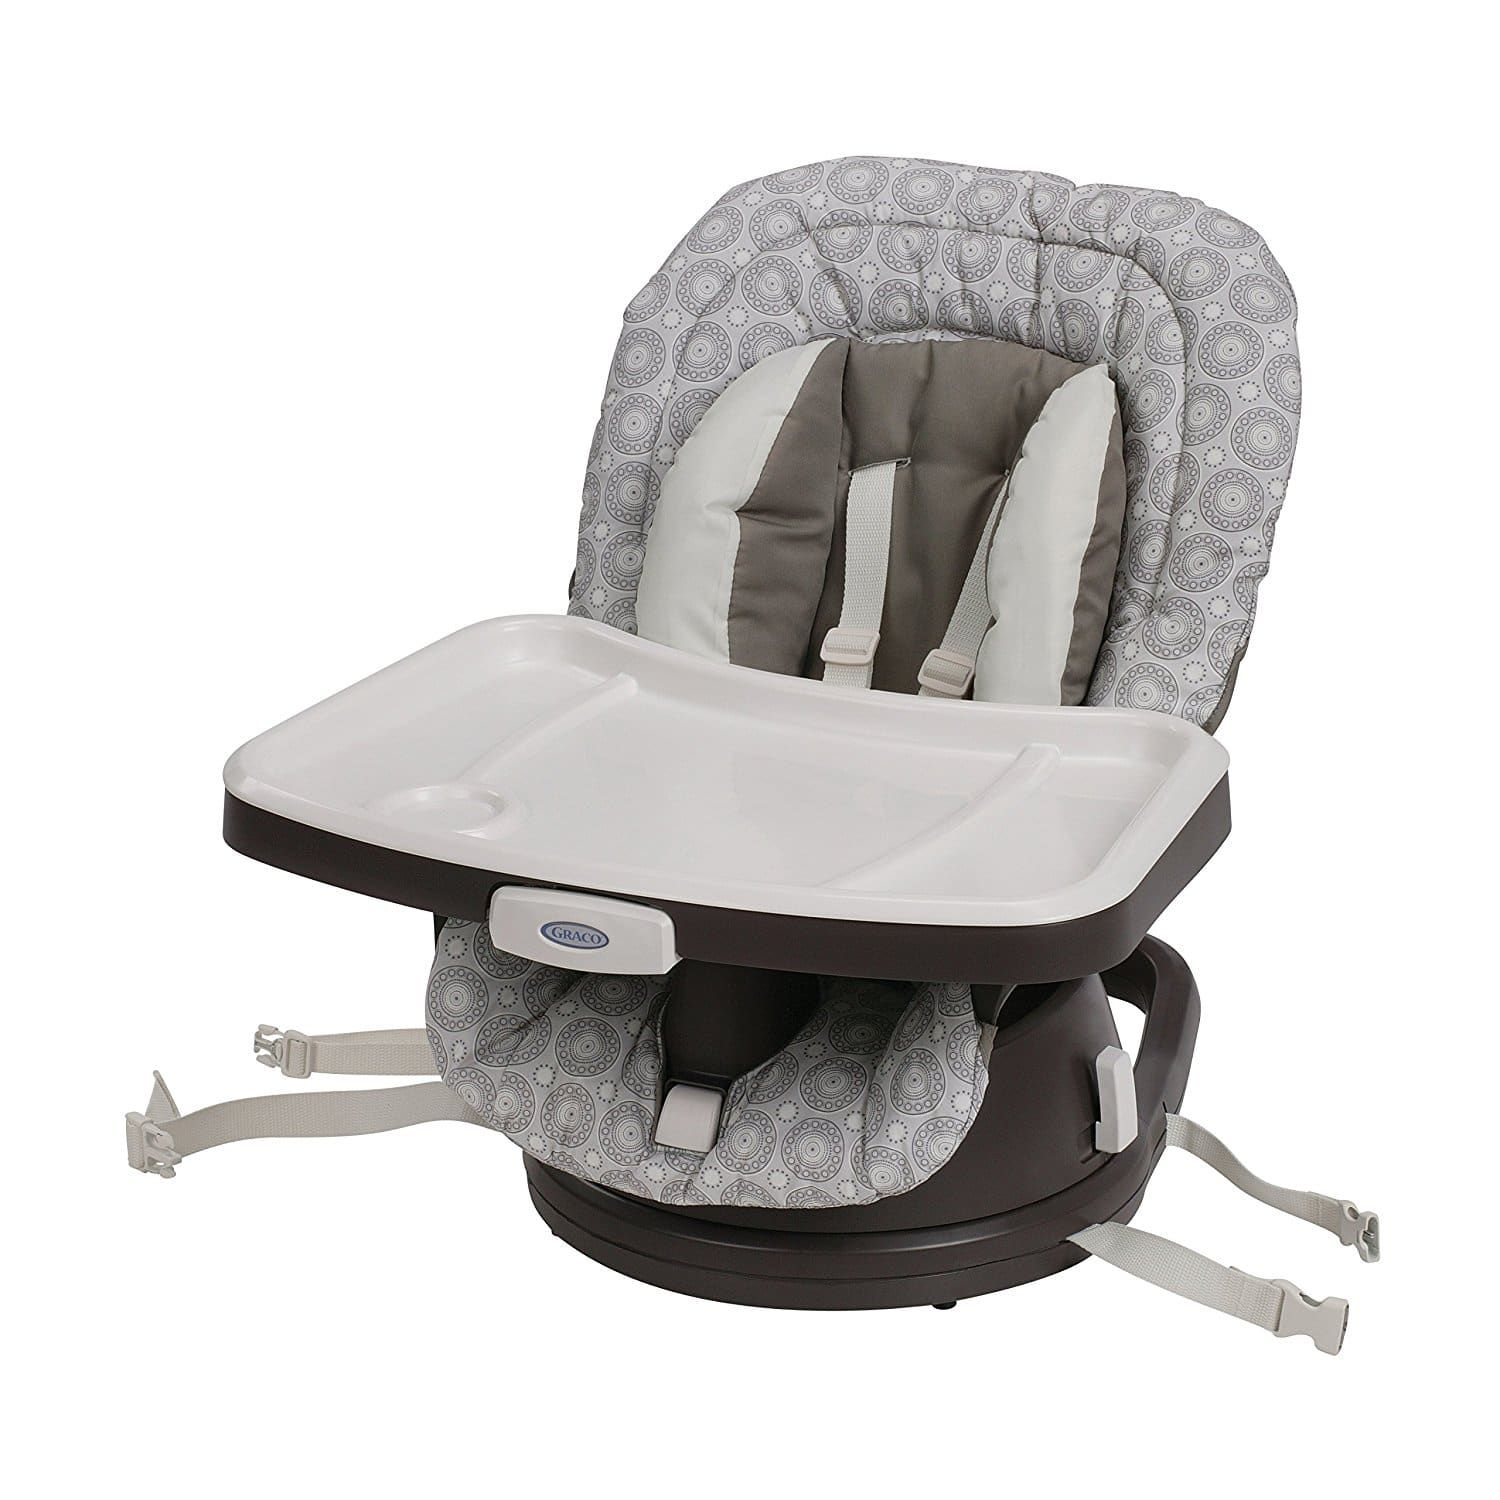 Charmant Graco Swivi Booster High Chair Seat 3 In 1, Abbington